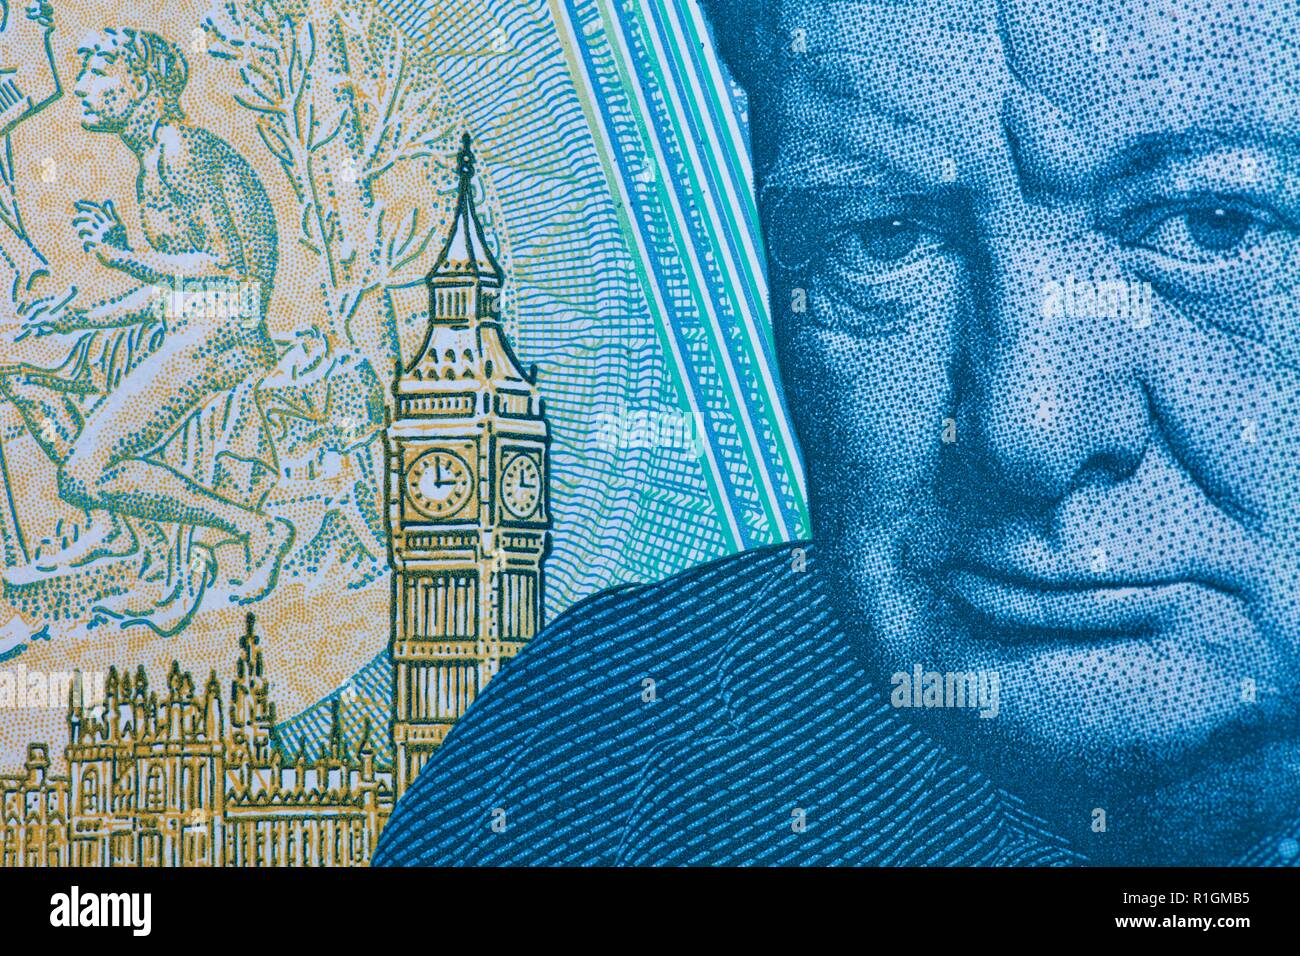 The Bank of England polymer £5 note featuring Sir Winston Churchill - Stock Image